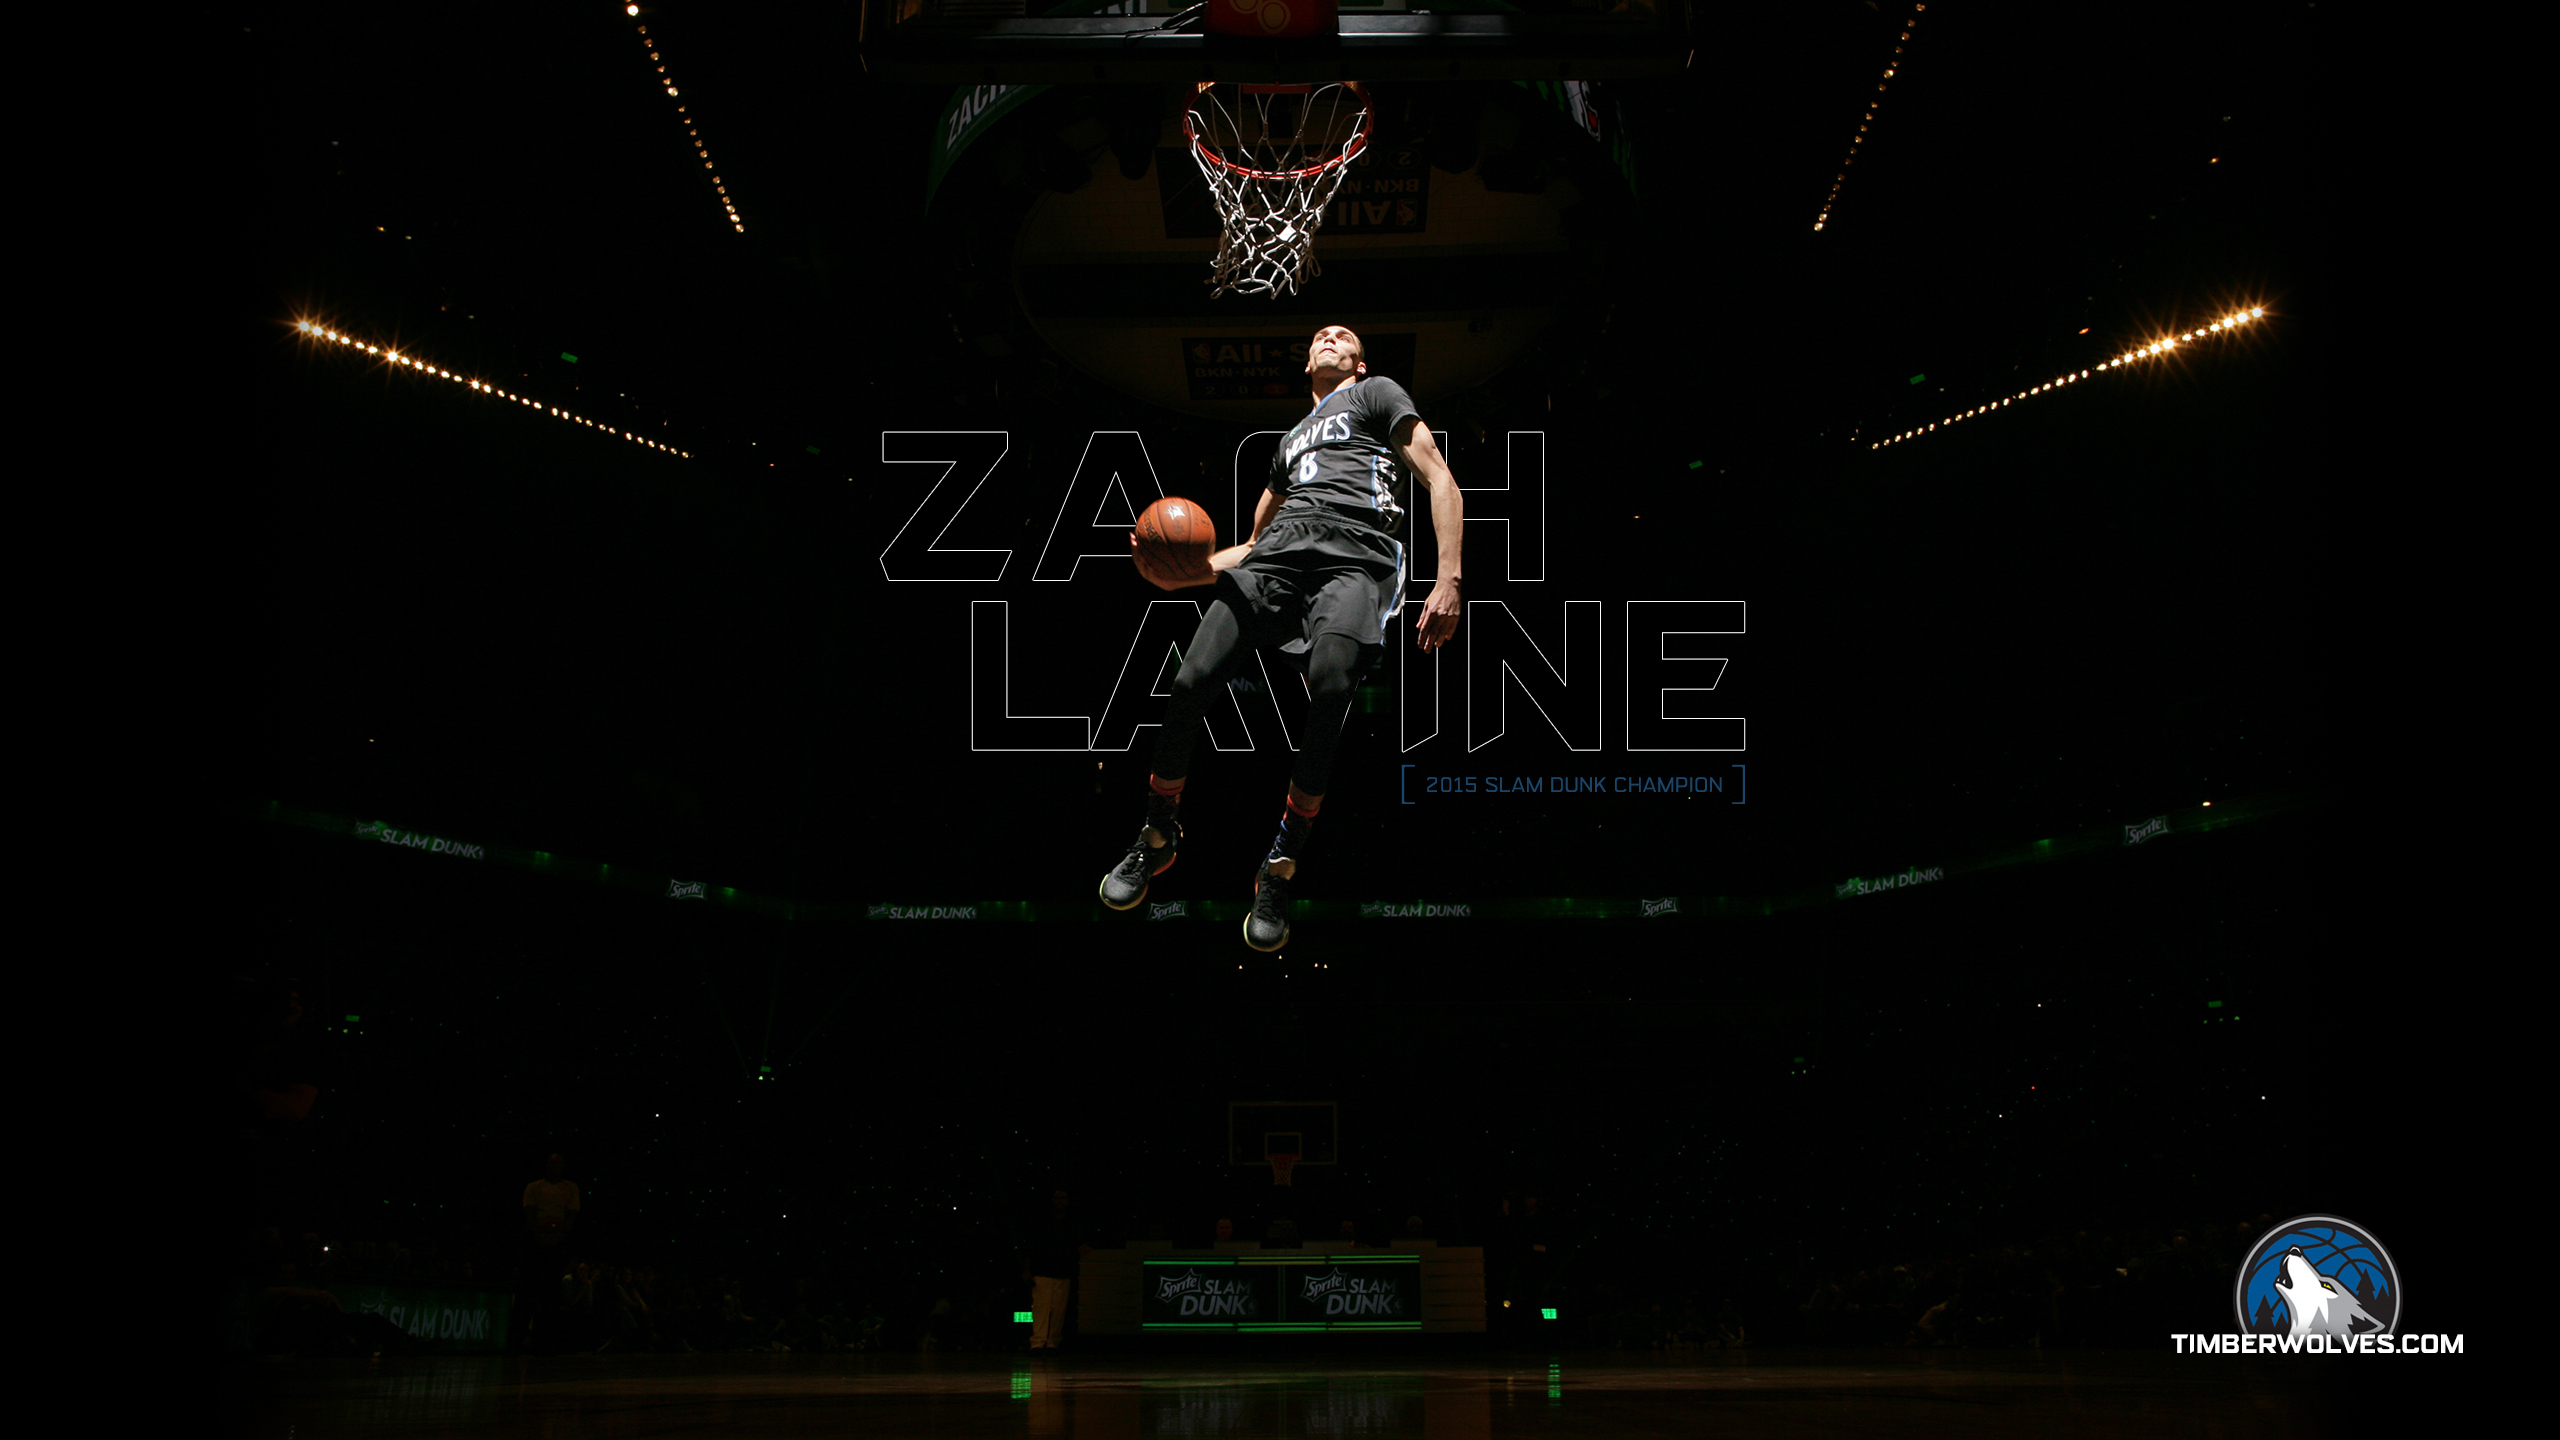 Hd wallpaper nba - Lavine S Dunk Contest